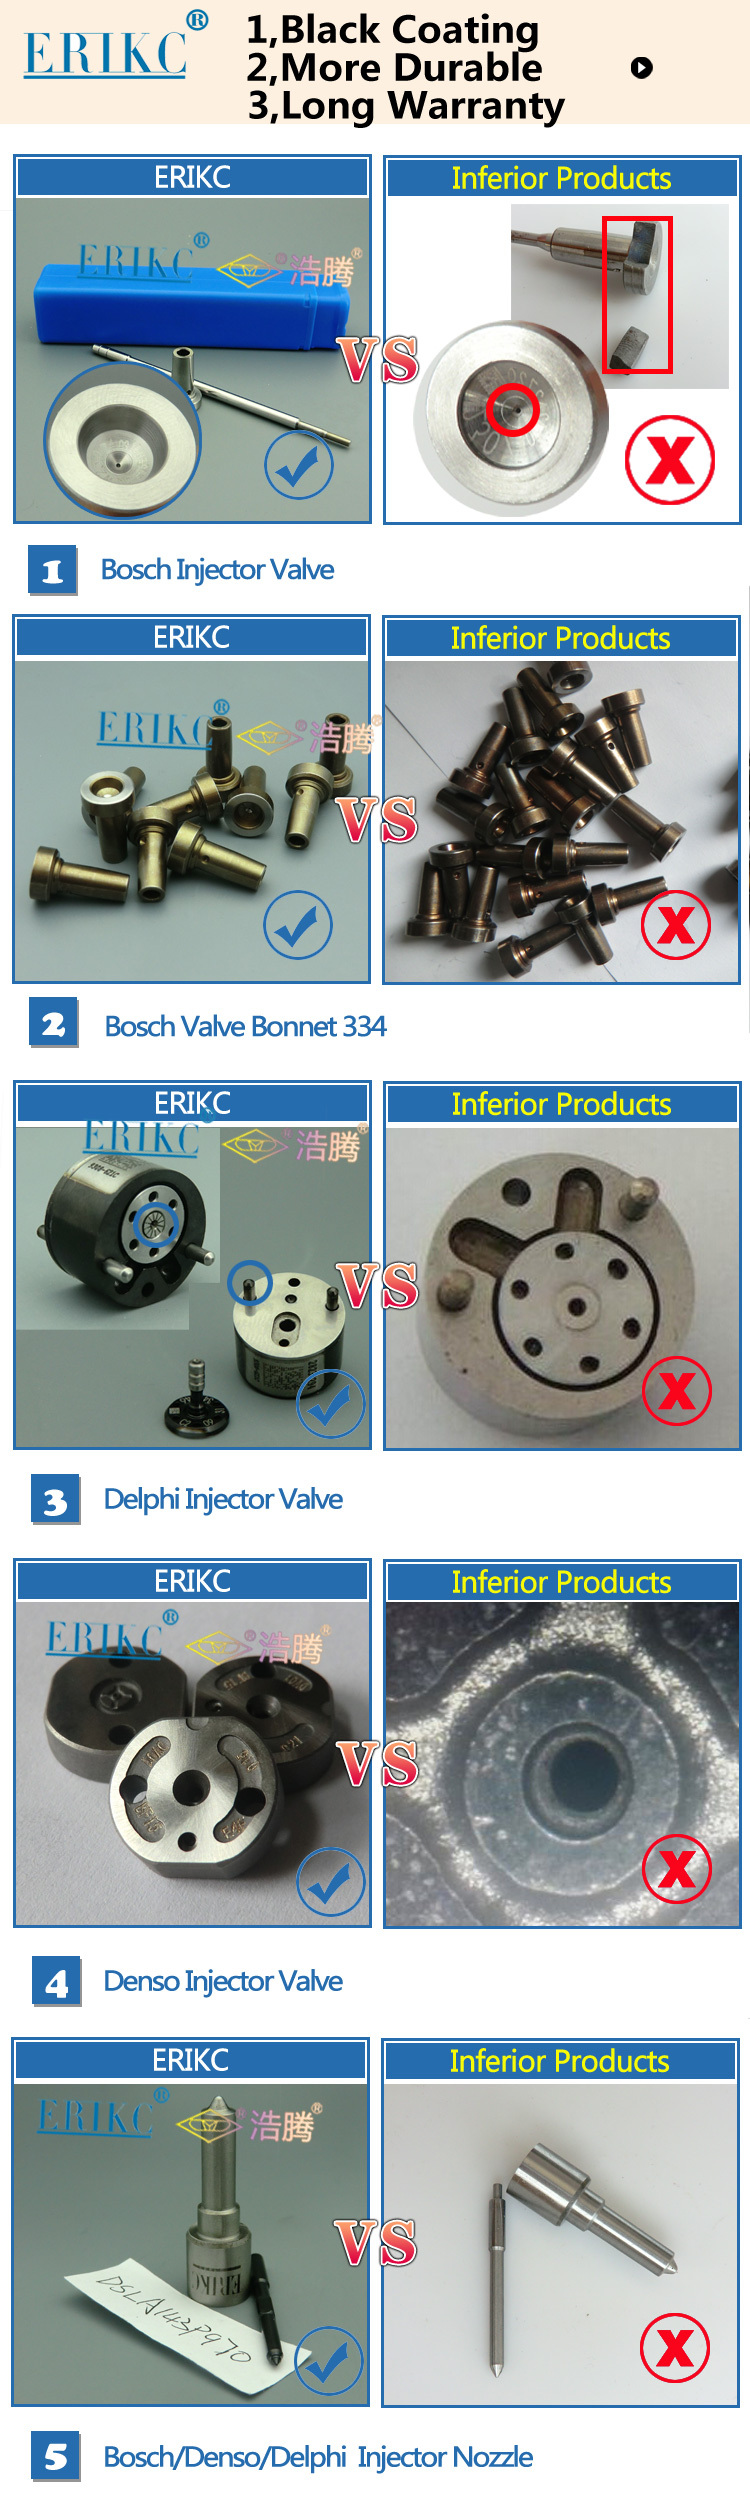 Factory 095000-650# diesel pump injector valve rod 095000650#,denso oil injector valve rod 095000 650#